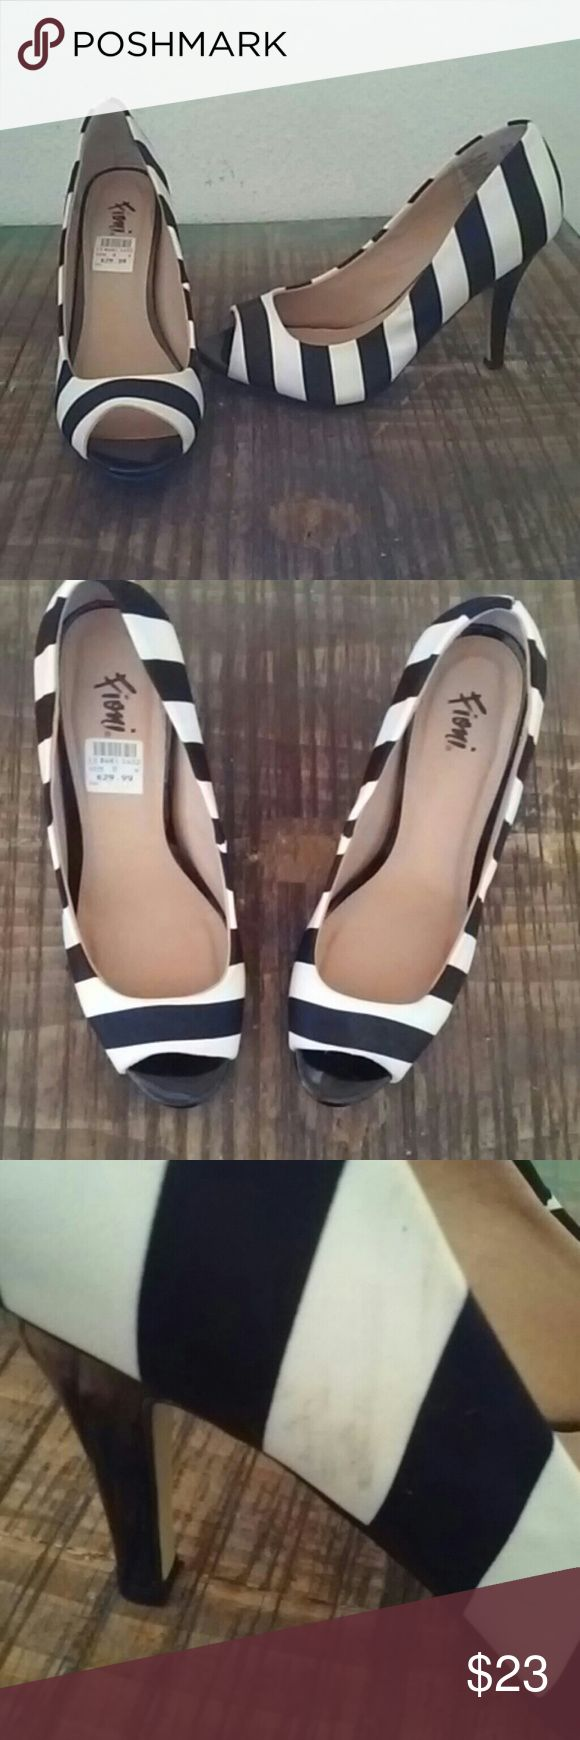 "*FIONI* Striped Heels Black and white stripe heels. Gently worn. I purchased these and they are too big. They are an 8W. Small mark on right side of right heel. Not noticeable and can be cleaned. no signs of wear in inner soles and bottoms show very little wear.  Heels measures at 3"" so super comfy!Worn 3times!!! Has original tags on heel. Accepting offers! FIONI  Shoes Heels"